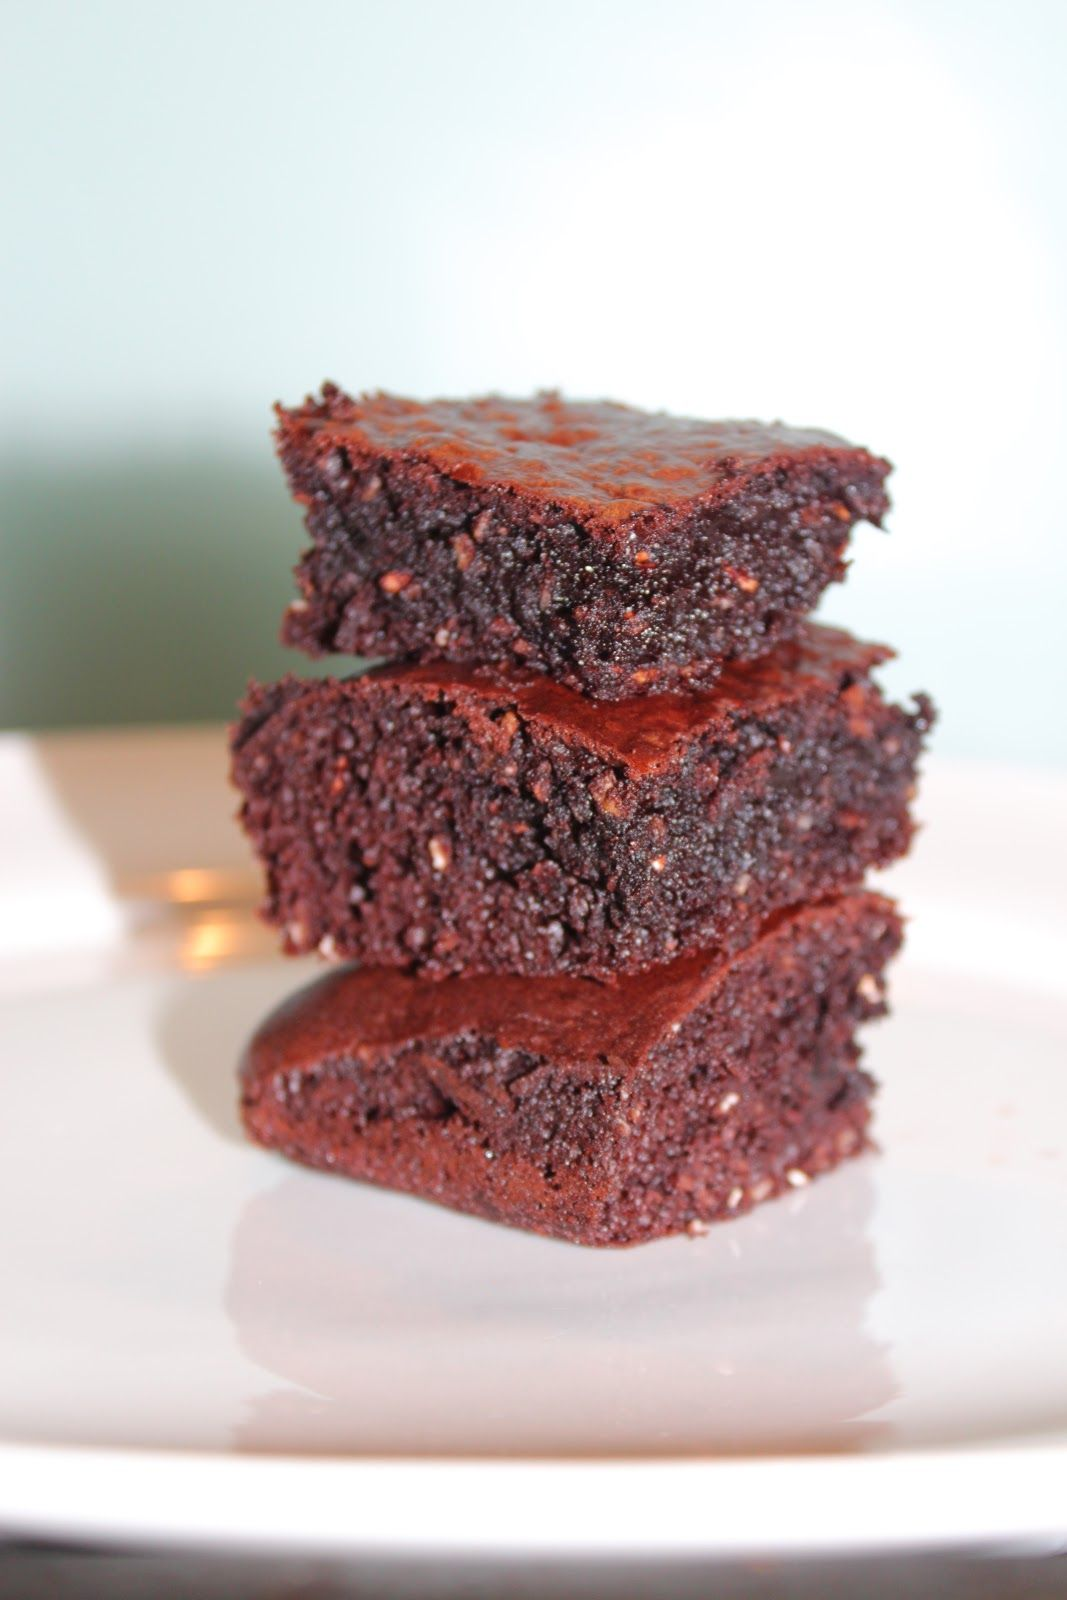 Random Drawers: Condensed Milk and Instant Oats Brownies- Easy to make and ready in 20 minutes. Perfect warm with ice-cream or whipped cream.